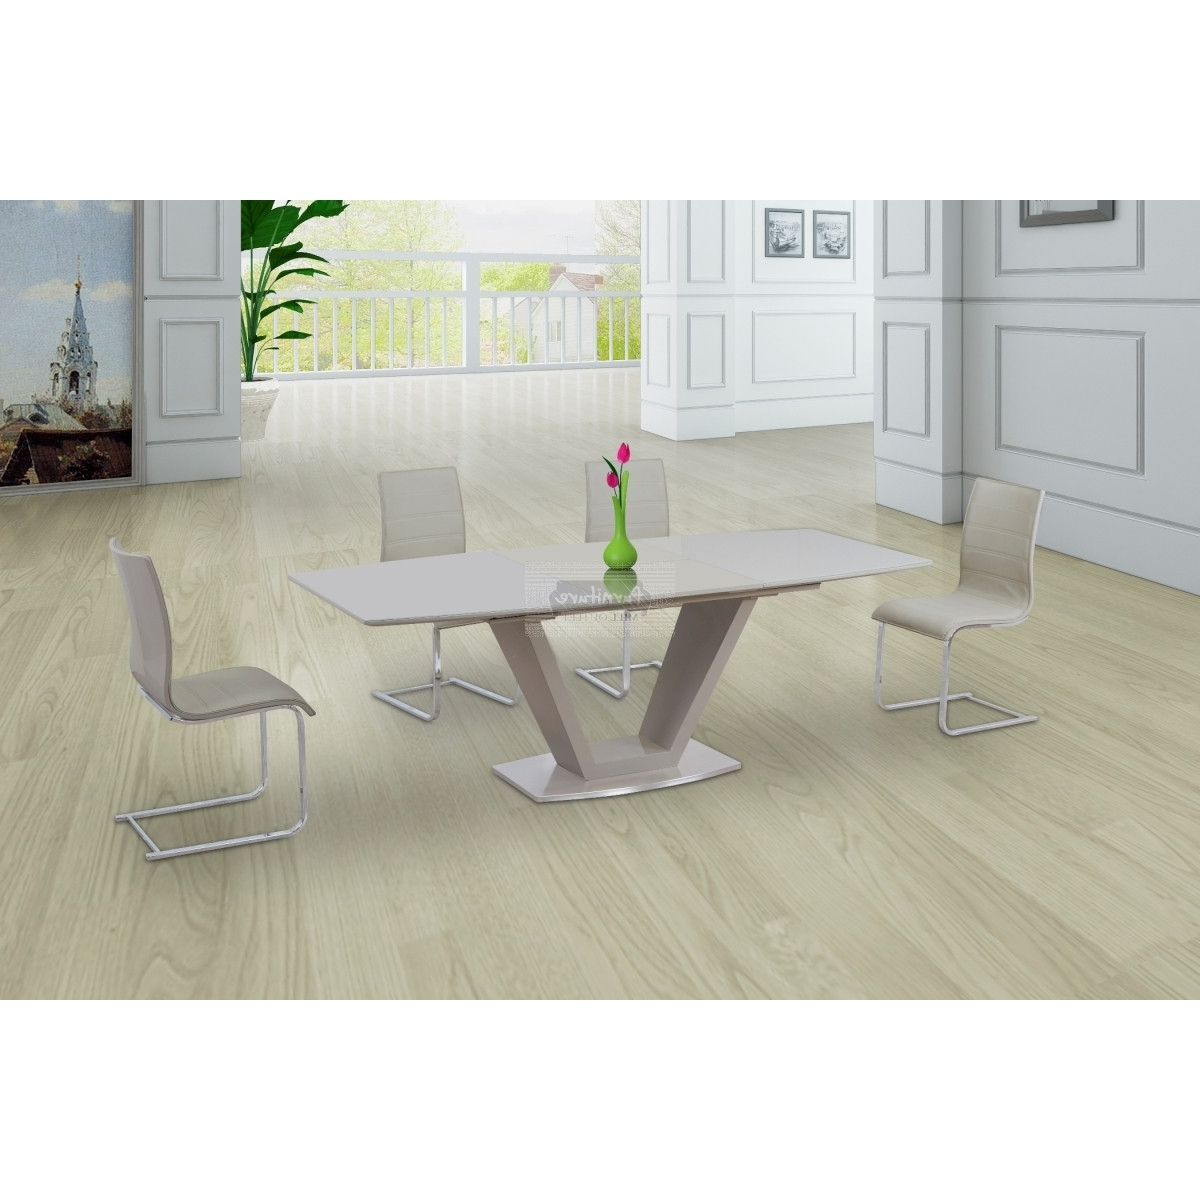 Fashionable Cream Gloss Dining Tables And Chairs Throughout Lorgato Gelato Cream High Gloss Extending Dining Table – 160Cm To (View 10 of 25)